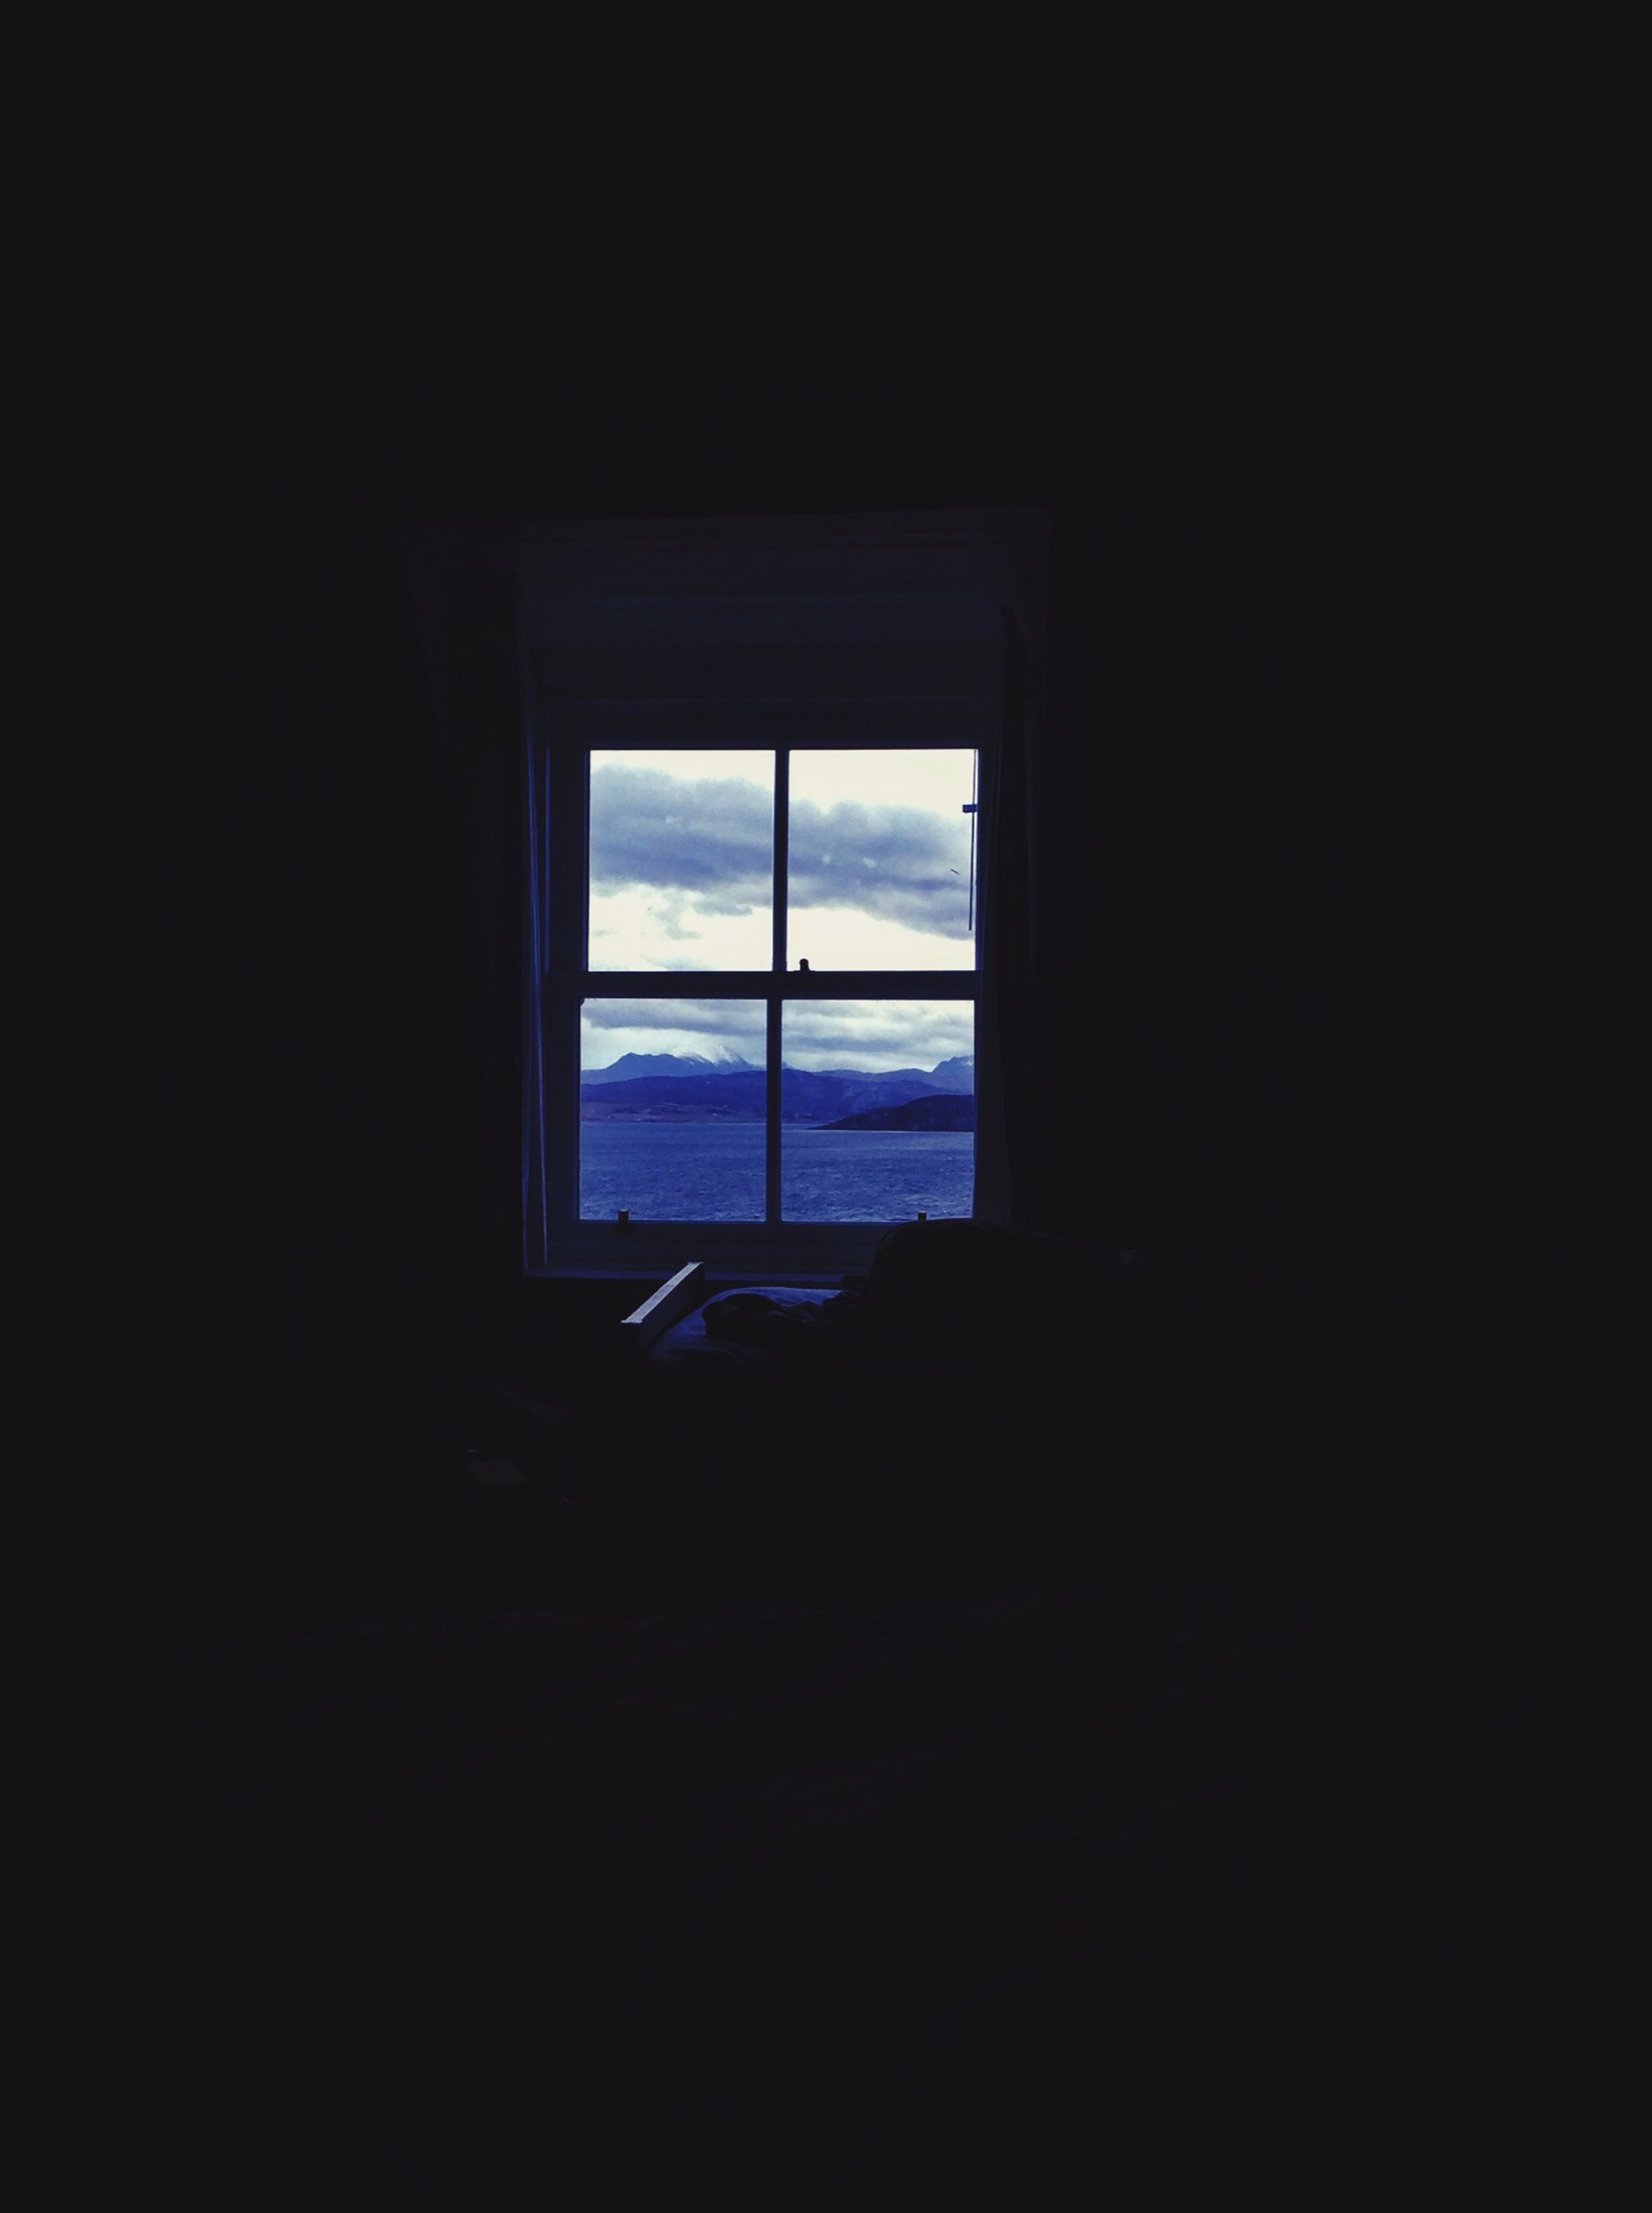 Homogany in Scotland. My morning view from my double bed. Perfection. View Scotland New Year